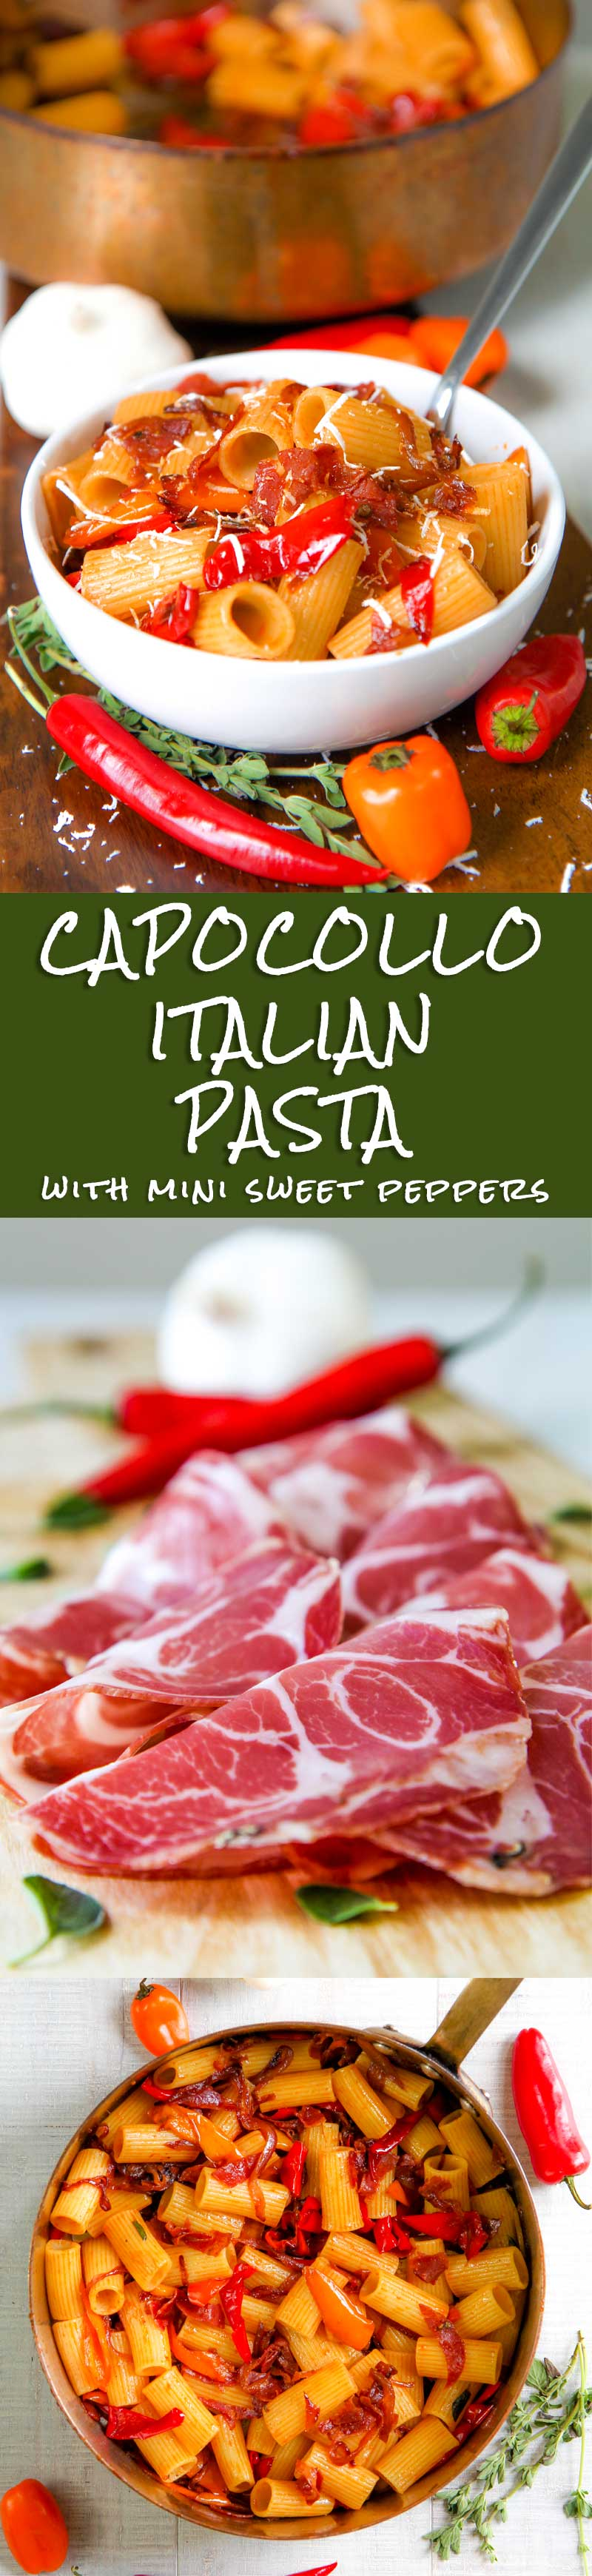 CAPOCOLLO AND MINI SWEET PEPPER PASTA